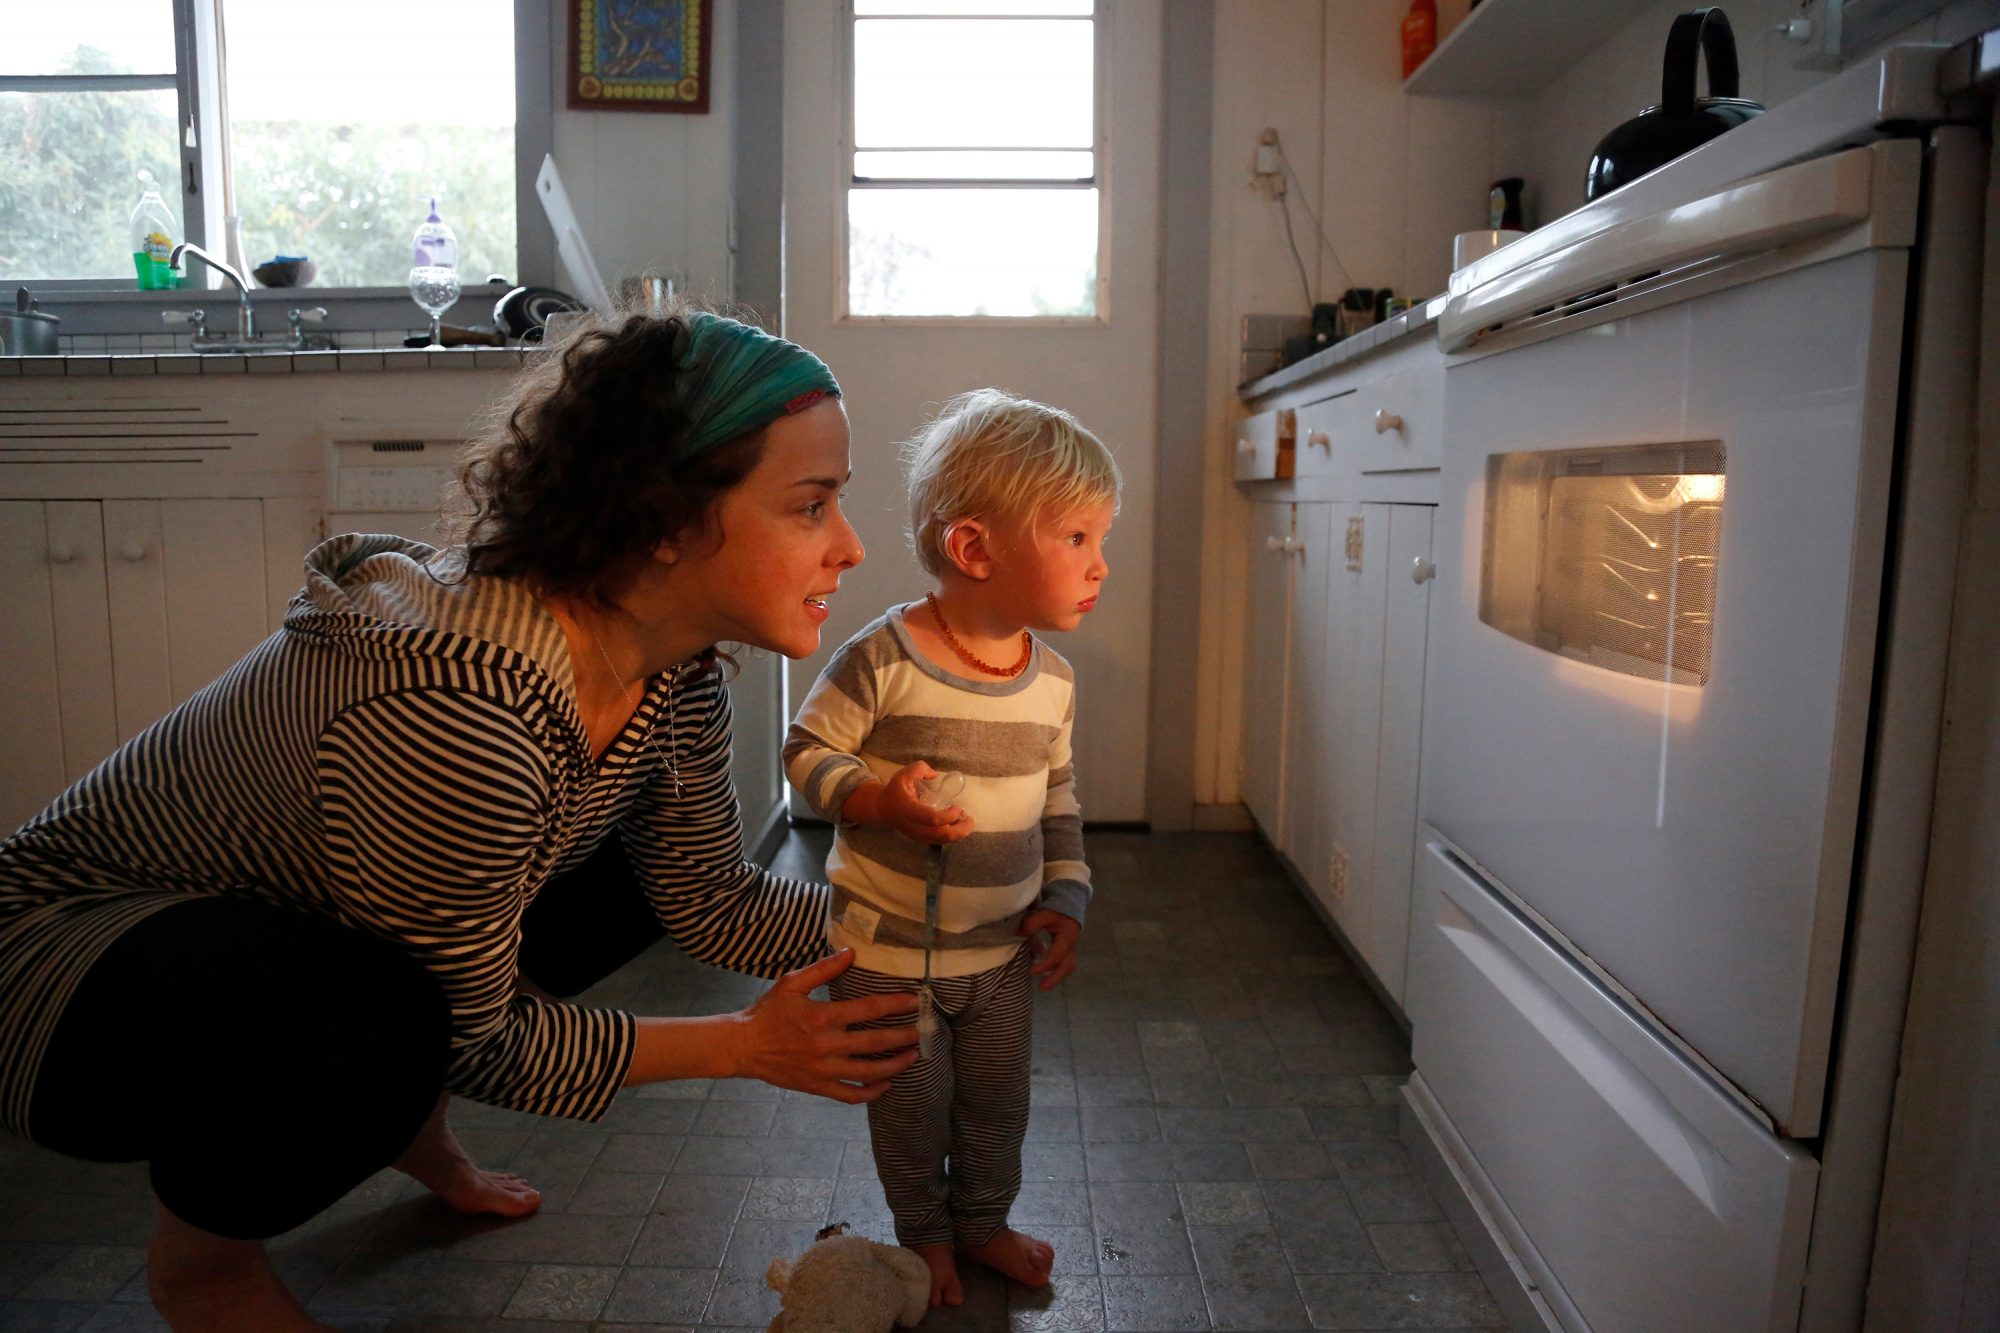 Mother and son looking in oven window